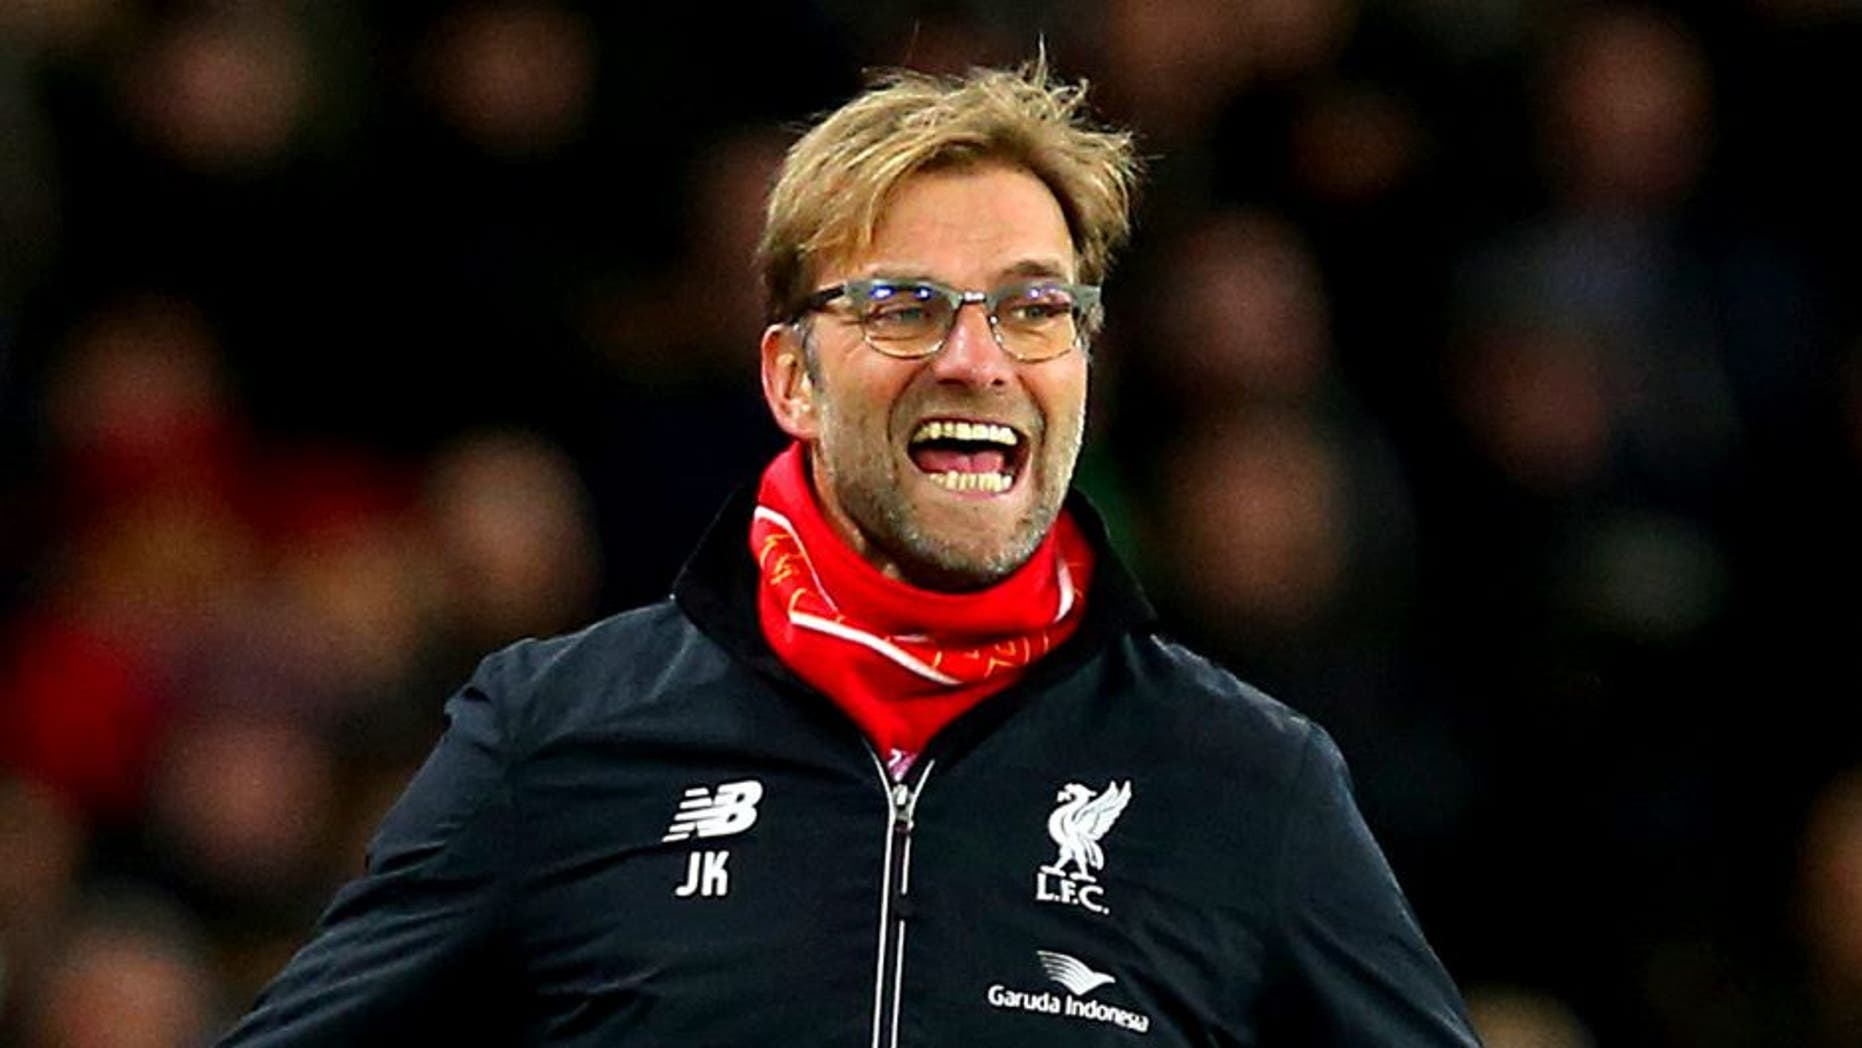 SUNDERLAND, ENGLAND - DECEMBER 30: Jurgen Klopp, manager of Liverpool reacts during the Barclays Premier League match between Sunderland and Liverpool at Stadium of Light on December 30, 2015 in Sunderland, England. (Photo by Ian MacNicol/Getty Images)